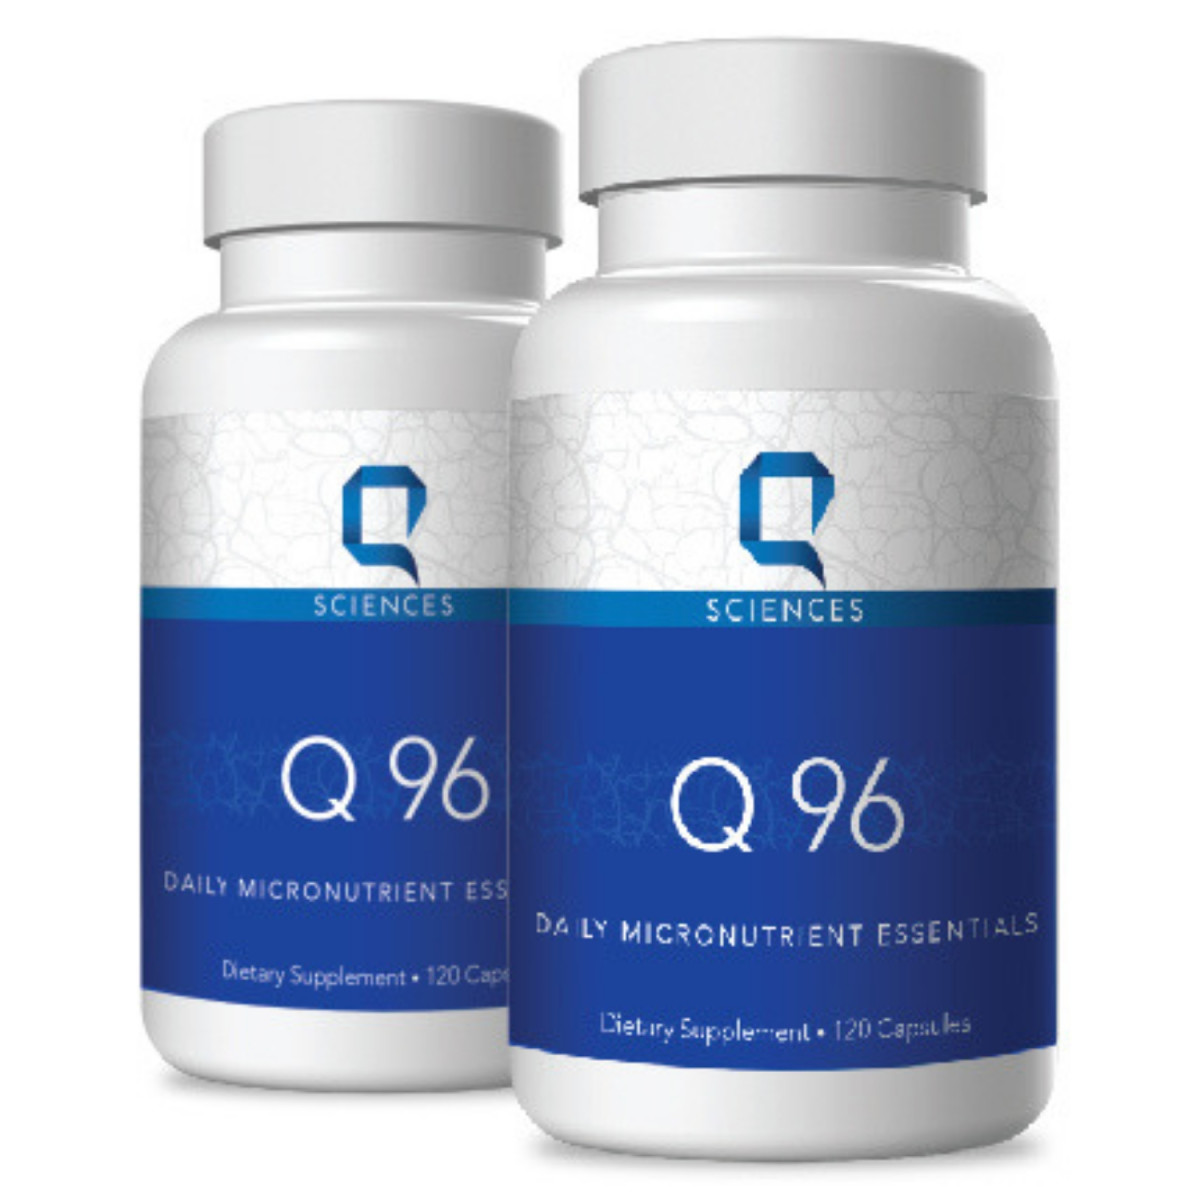 Q96 Vitamin Review